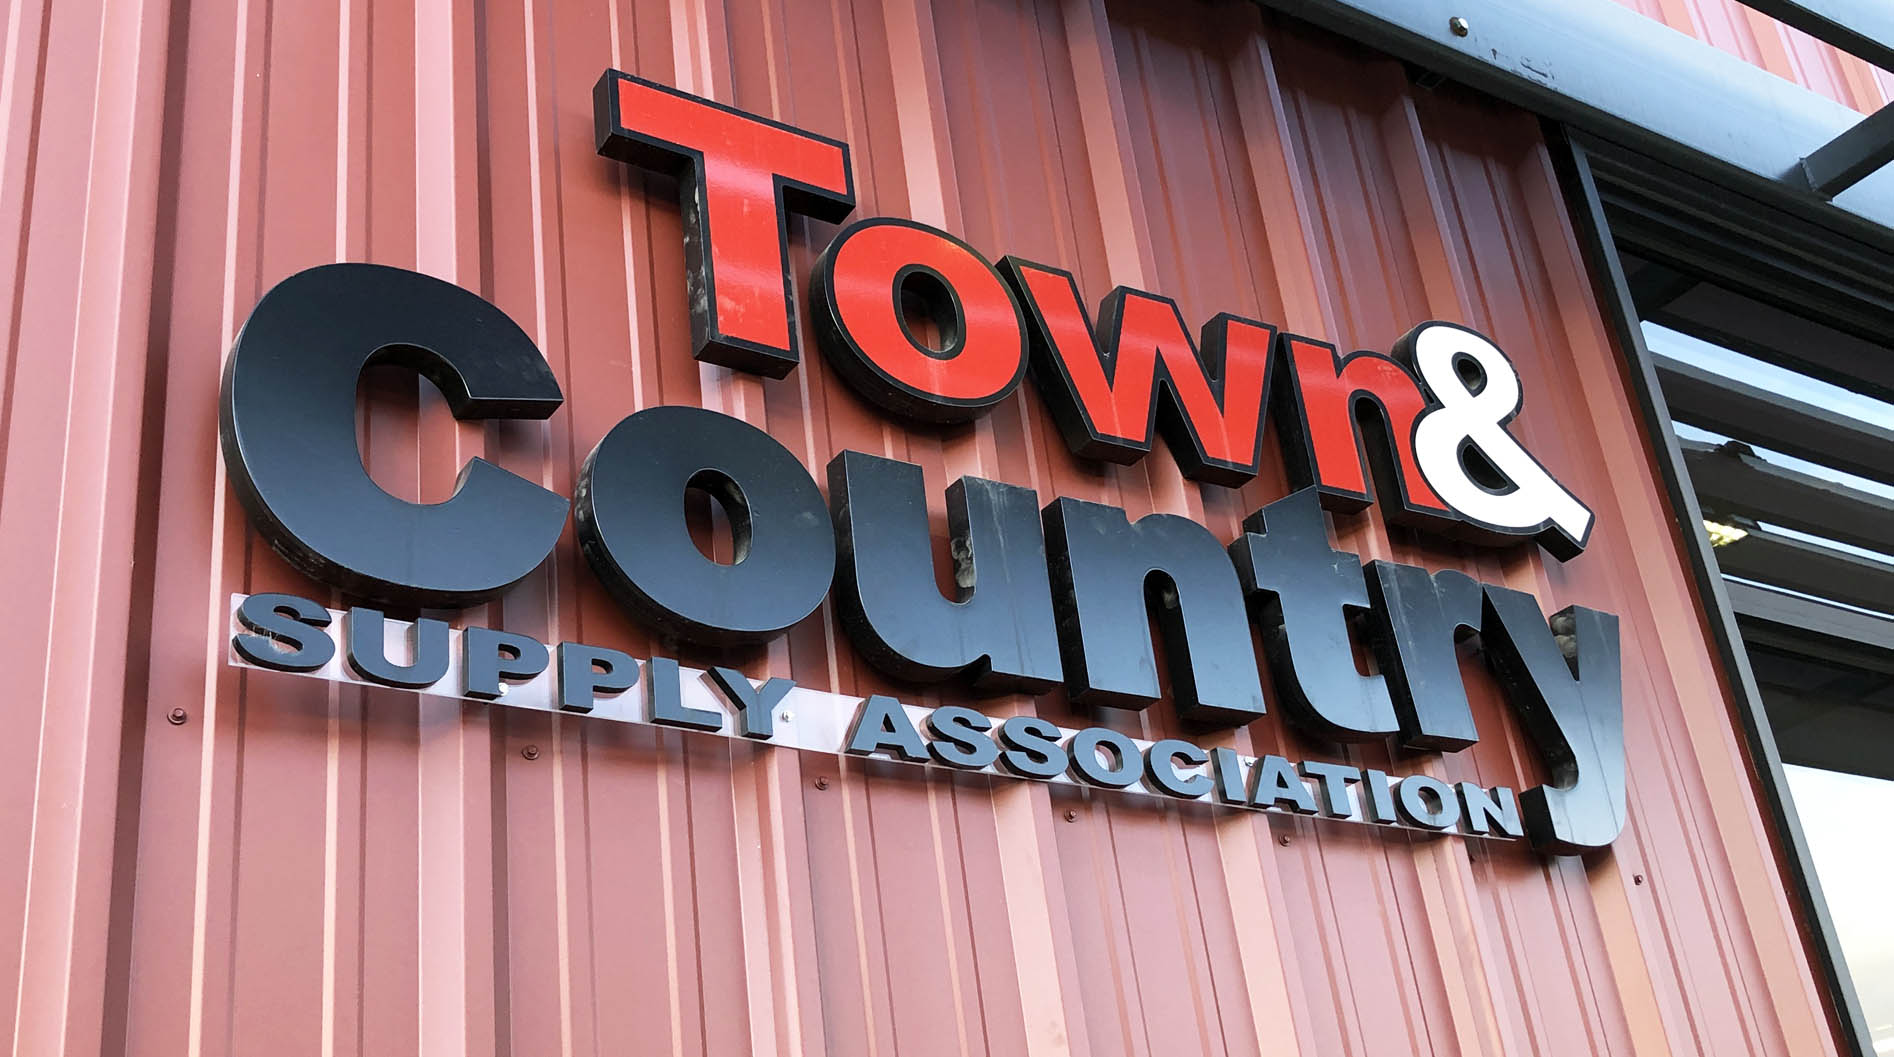 Town Country Supply Contact